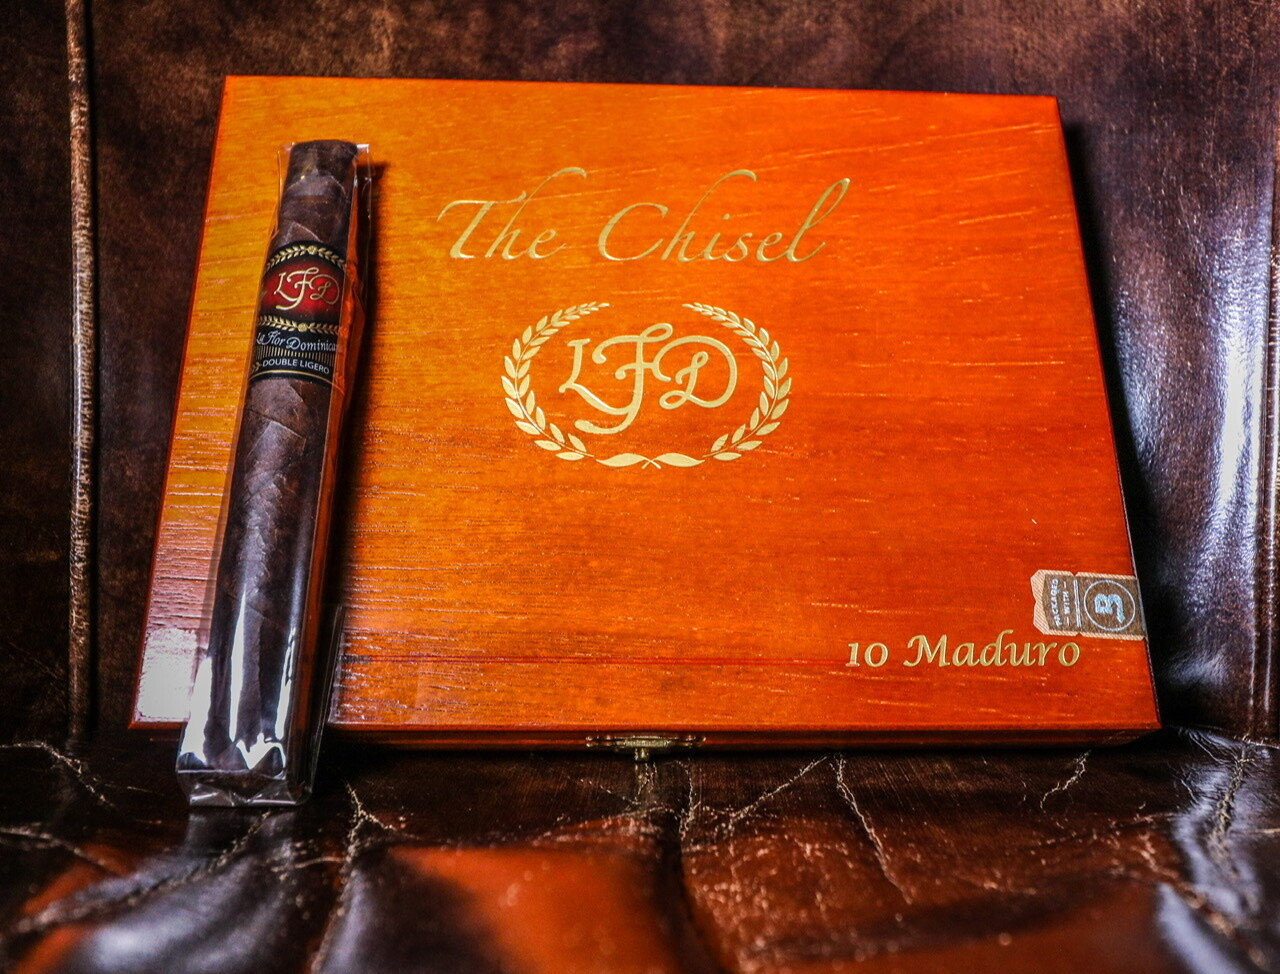 LFD The Chisel Double Ligero Maduro, 10's